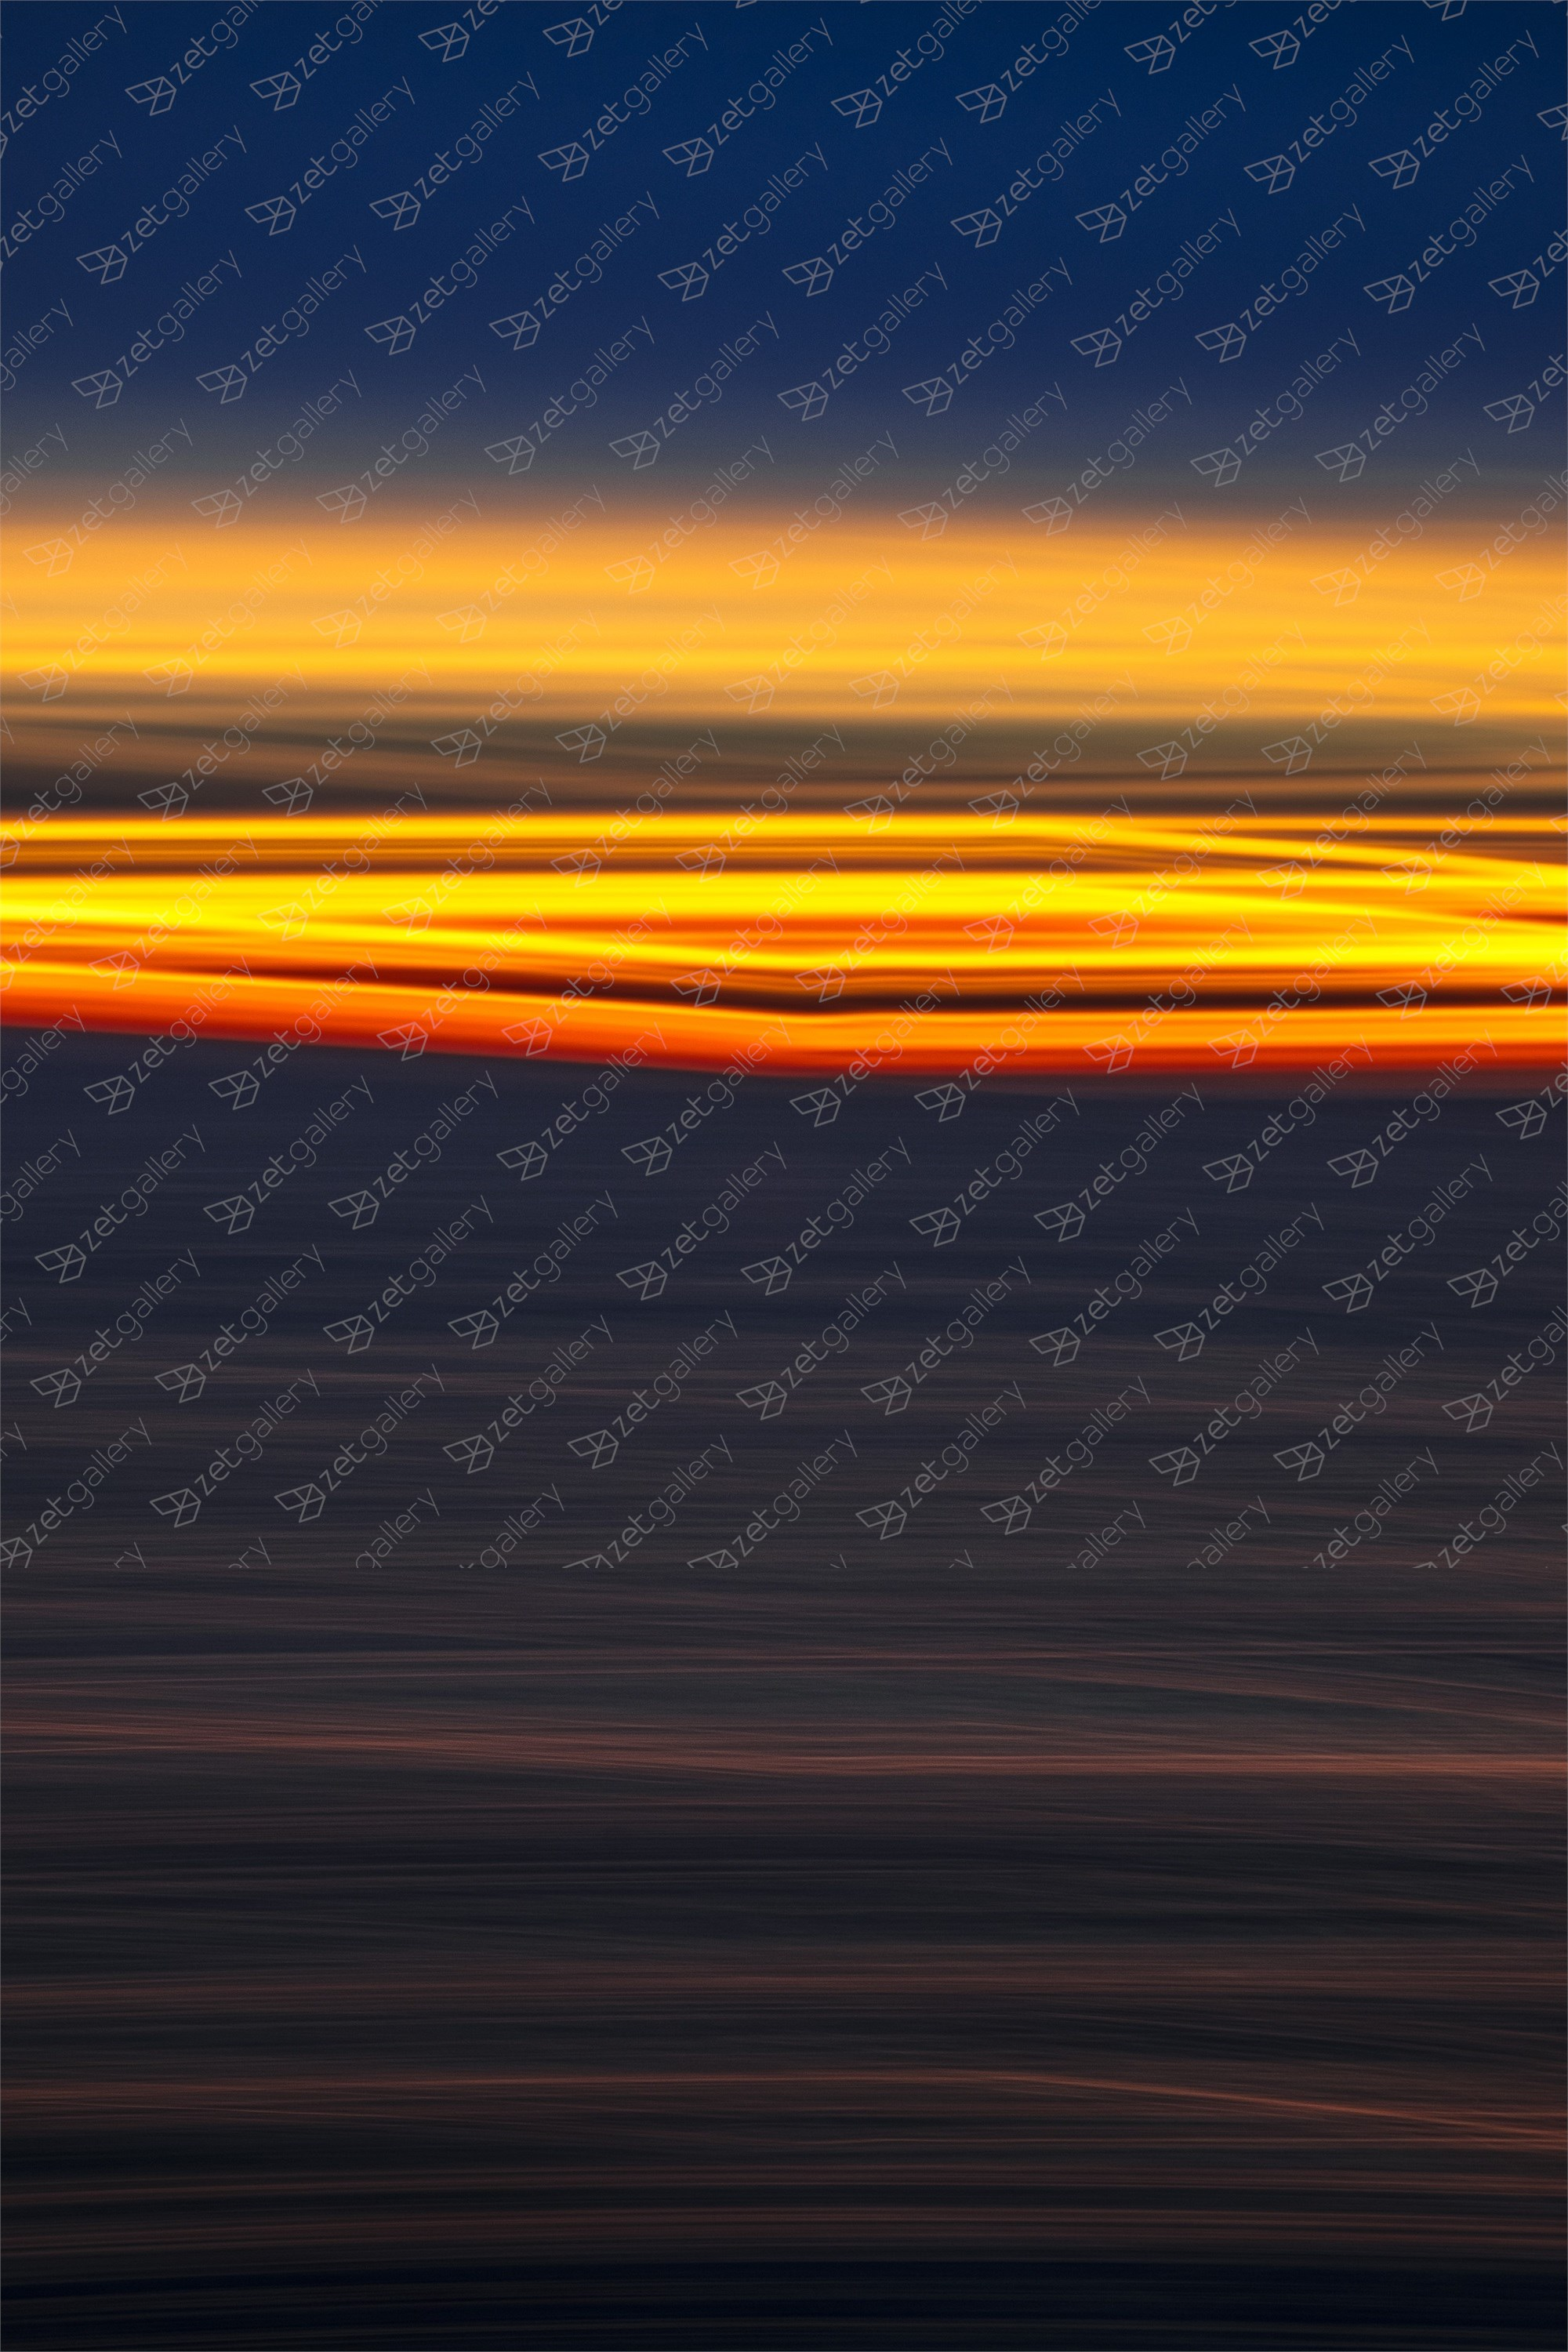 ABSTRACT SUNRISE II, Large Edition 1 of 5, Fotografia Digital Abstrato original por Benjamin Lurie